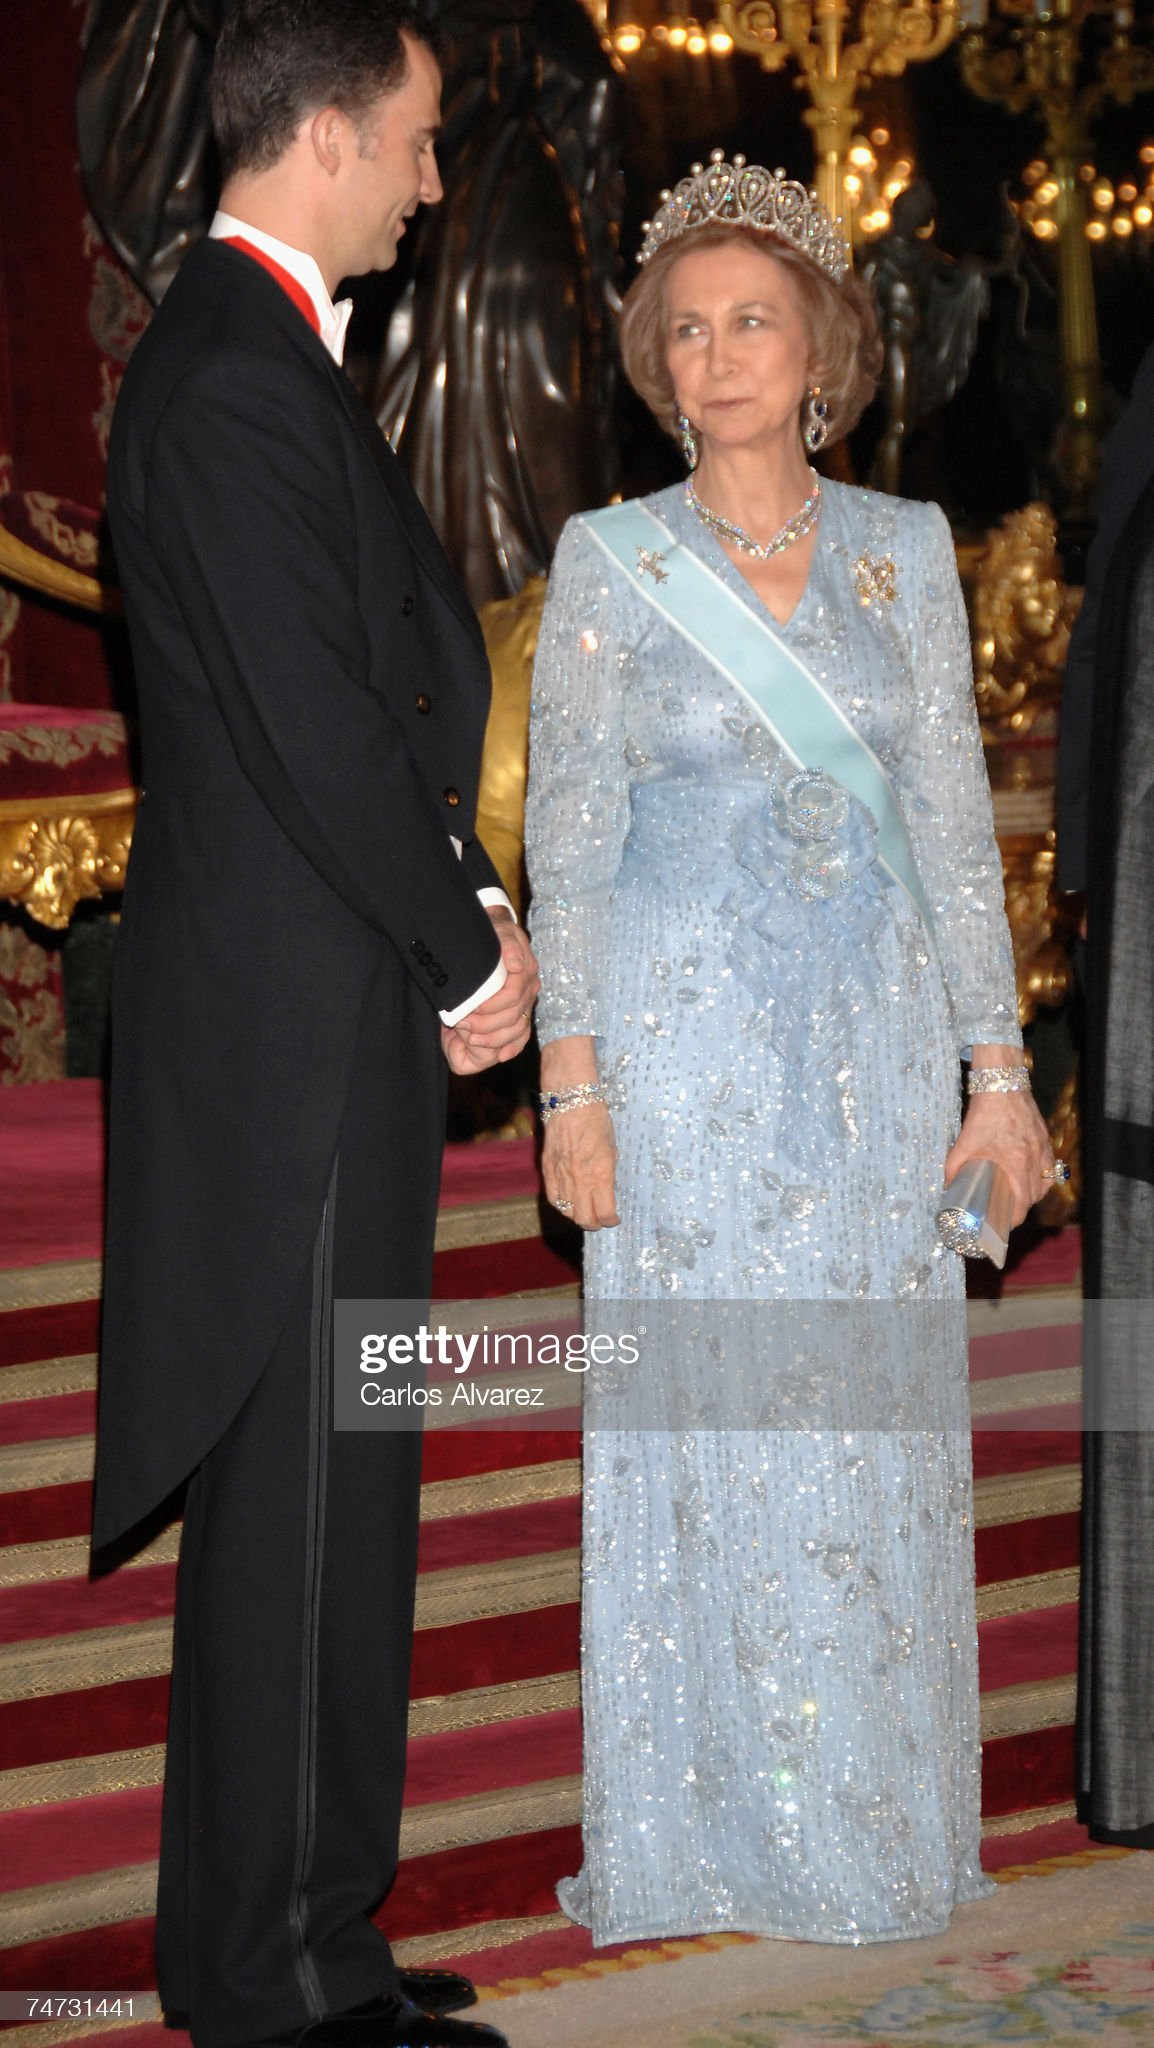 Spanish Royals Receive Saudi King Abdullah Bin Abdul Aziz Al Saud : News Photo